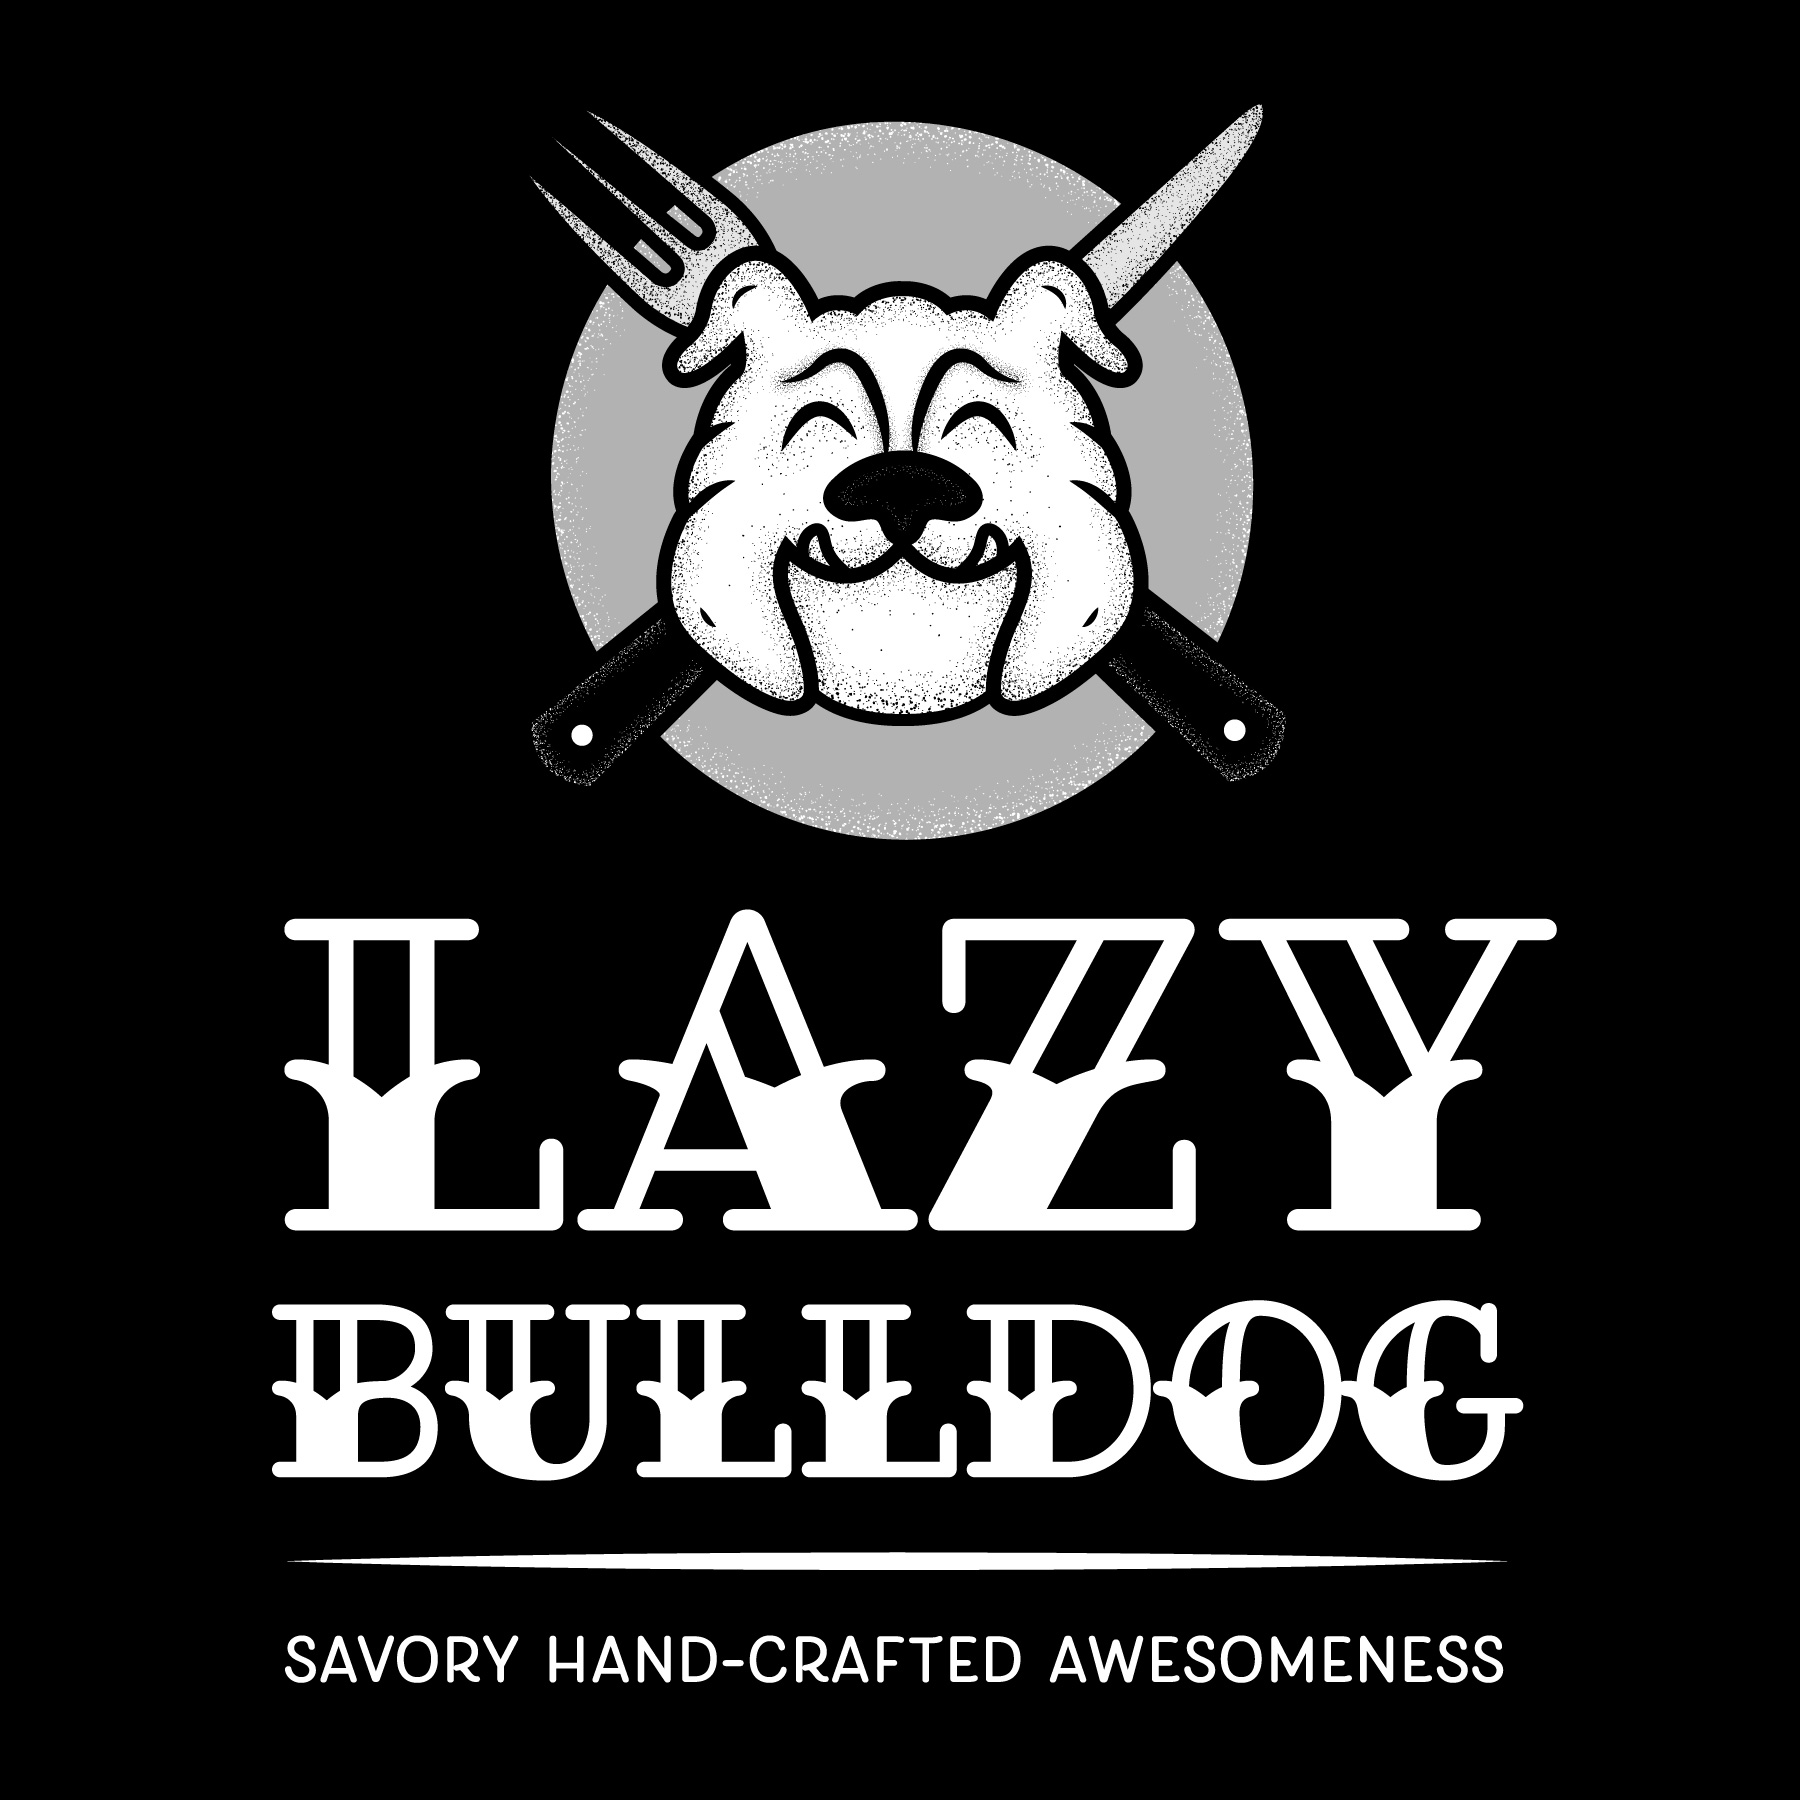 LazyBulldog_Logo_Stacked_Black BG-01.jpg